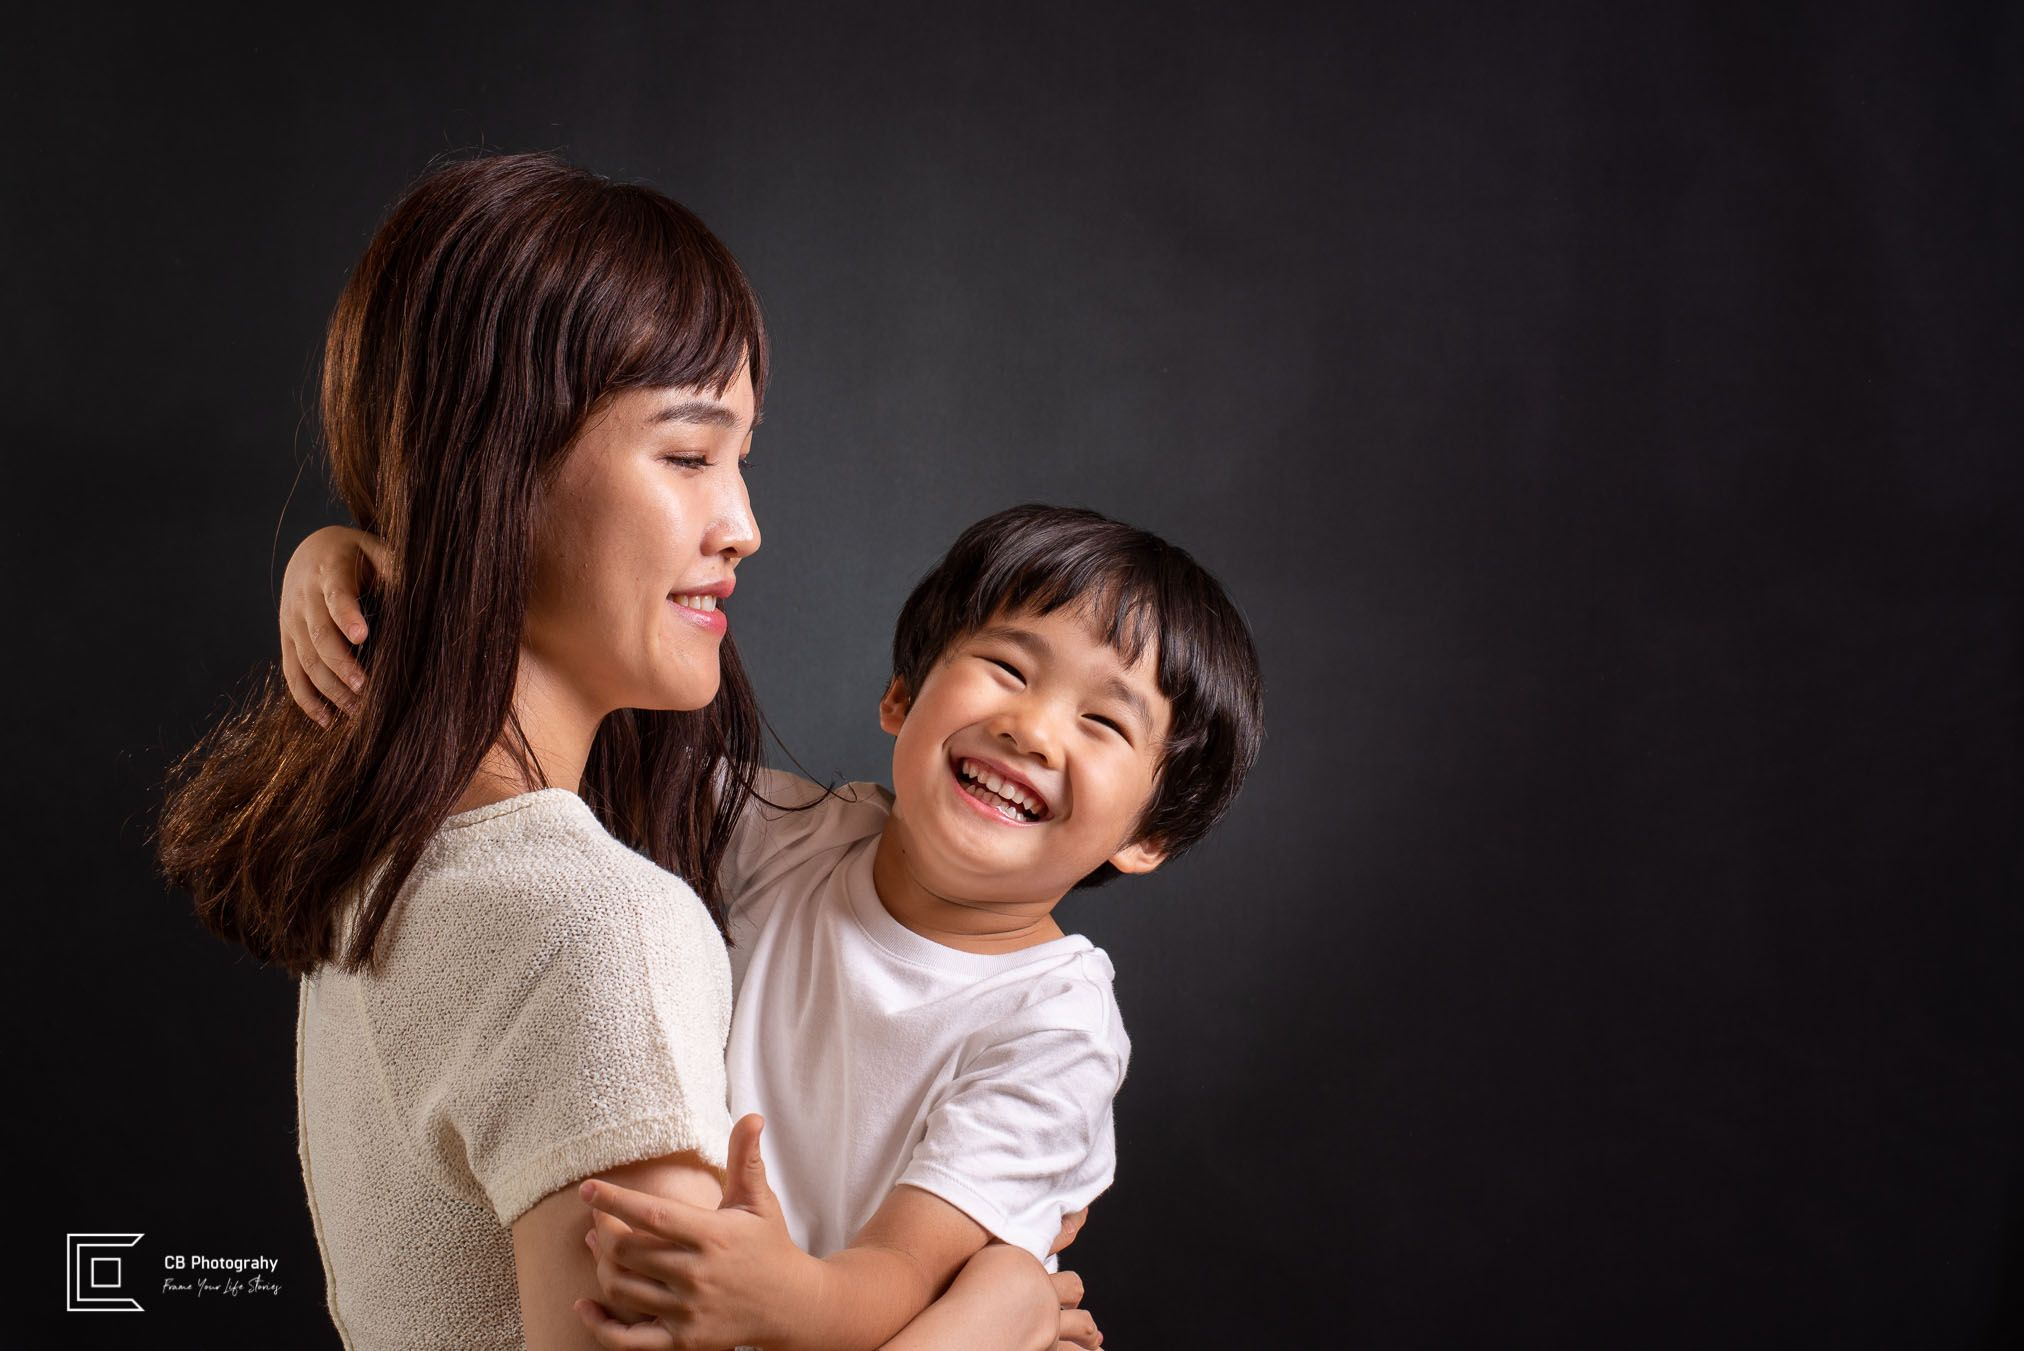 Mother and child studio shoot idea. When I started my home studio adventure, I couldn't imagine the amount of amazing photographs I will be able to create. It was a stiff, rough, yet amazing dance with the lights and shadows, which will continue to grow on me. I mean, look at that smile!😍😘🤩 It says it all, isn't it? #cristiancbucur #tokyophotographer #photographerintokyo #studiophotography #photoshoot #professionalphotography #studiophoto #childphotography